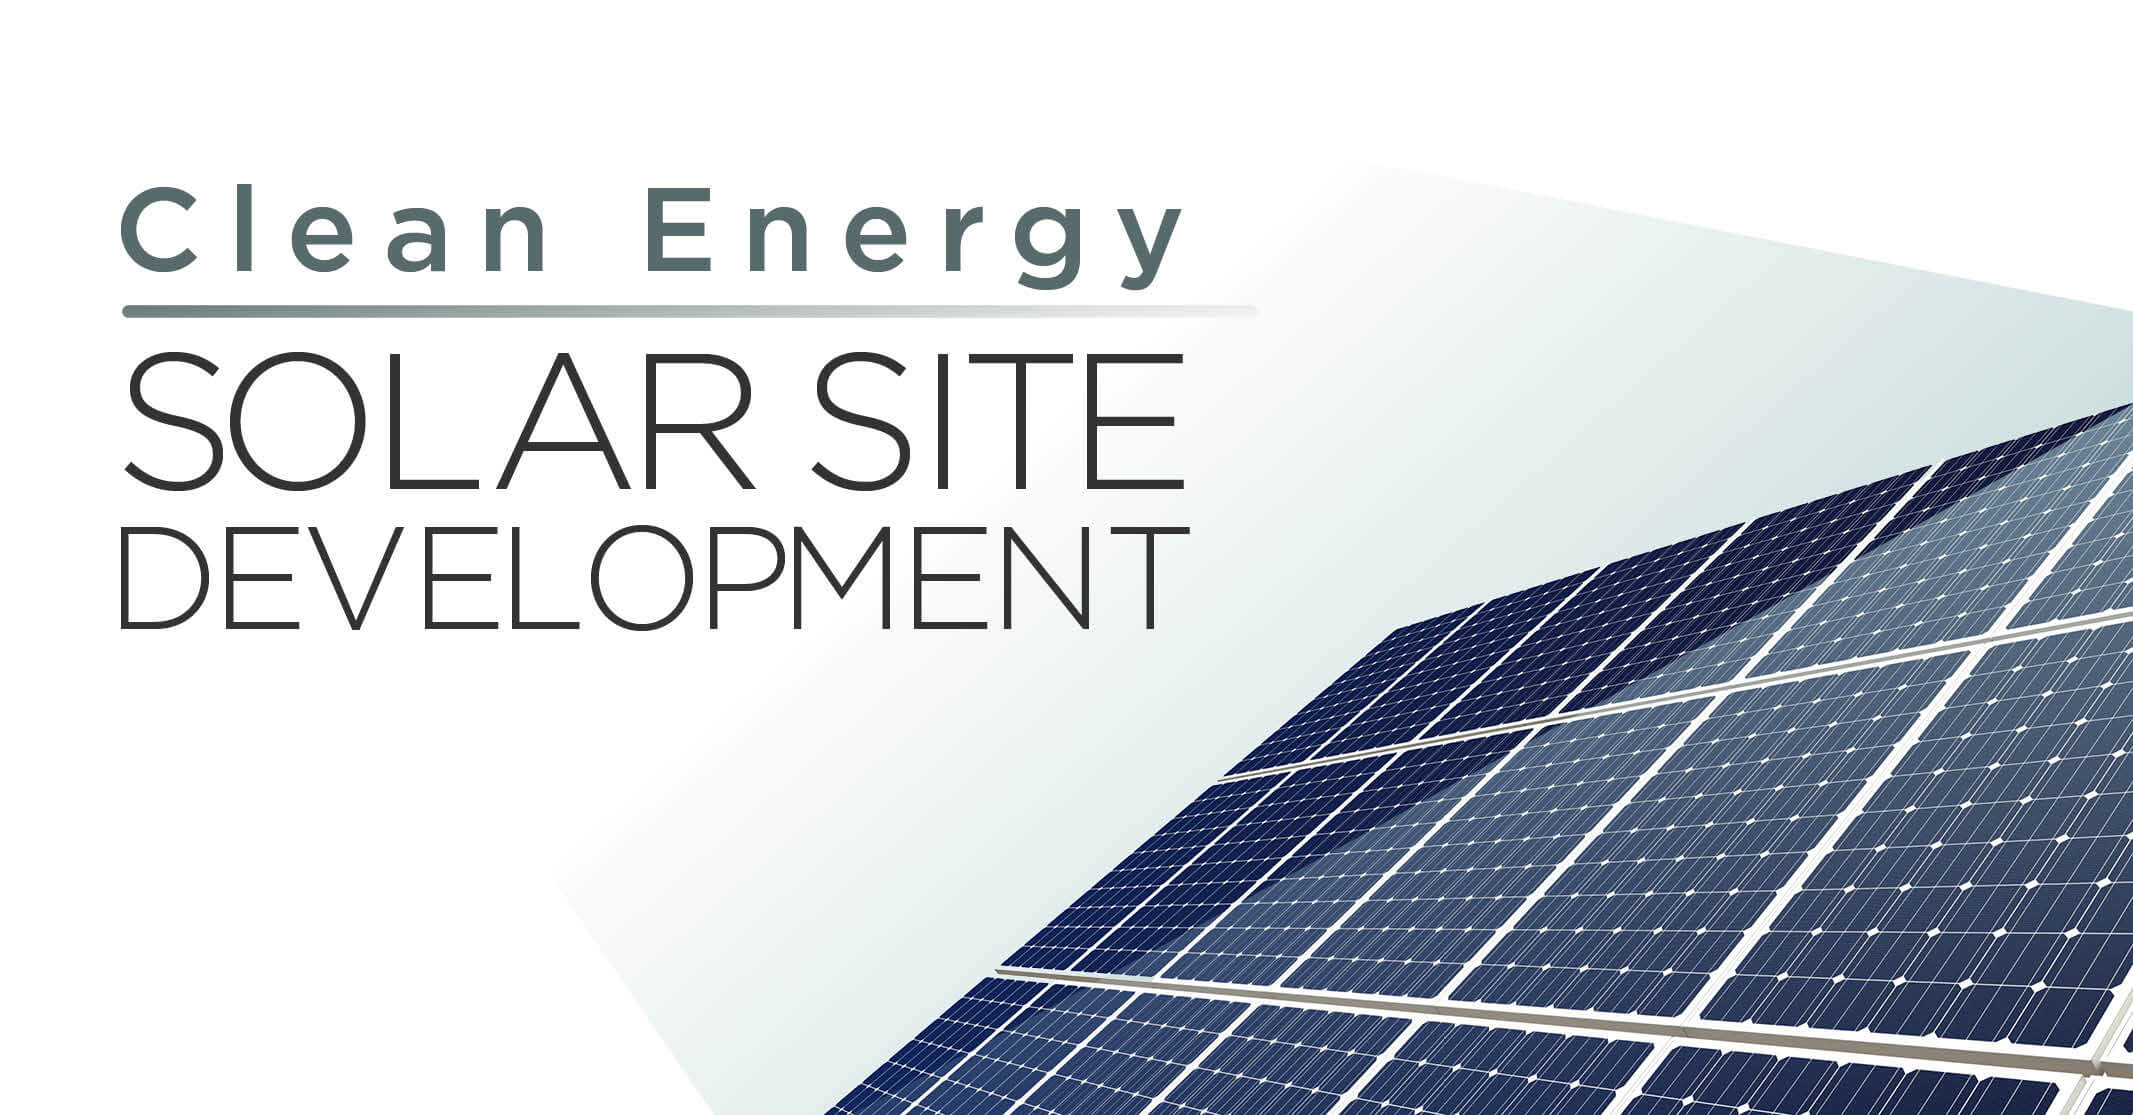 clean energy solar site development titled with solar panel illustration